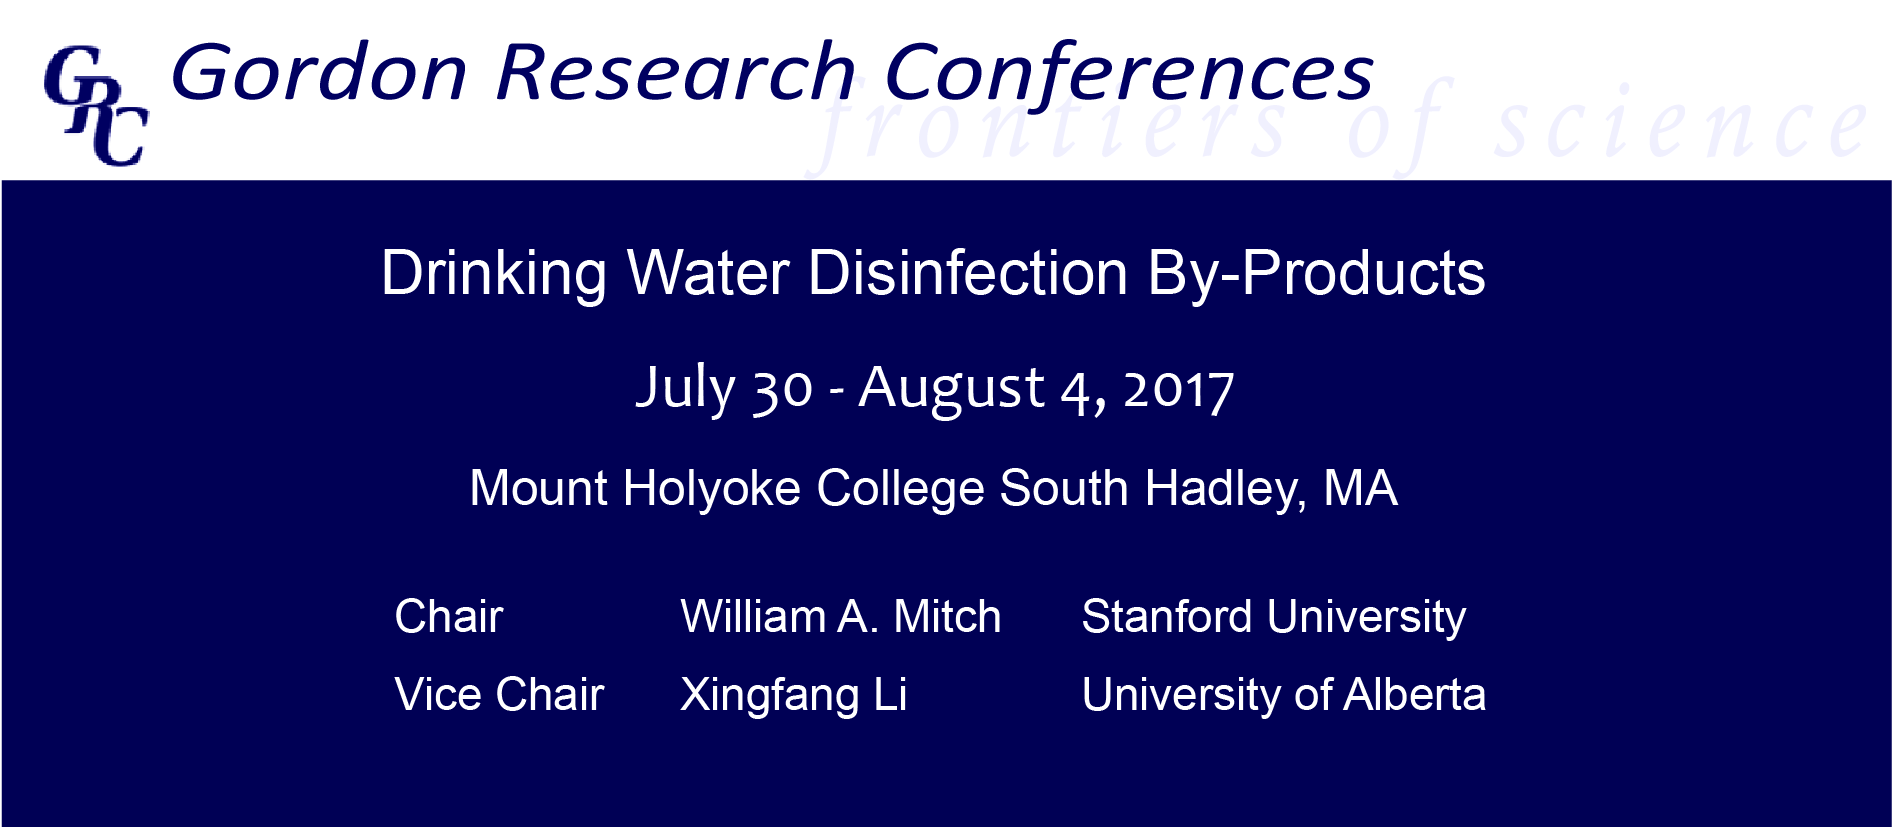 Gordon Research Conference: Drinking Water Disinfection By-Products<br>William A. Mitch, Xingfang Li